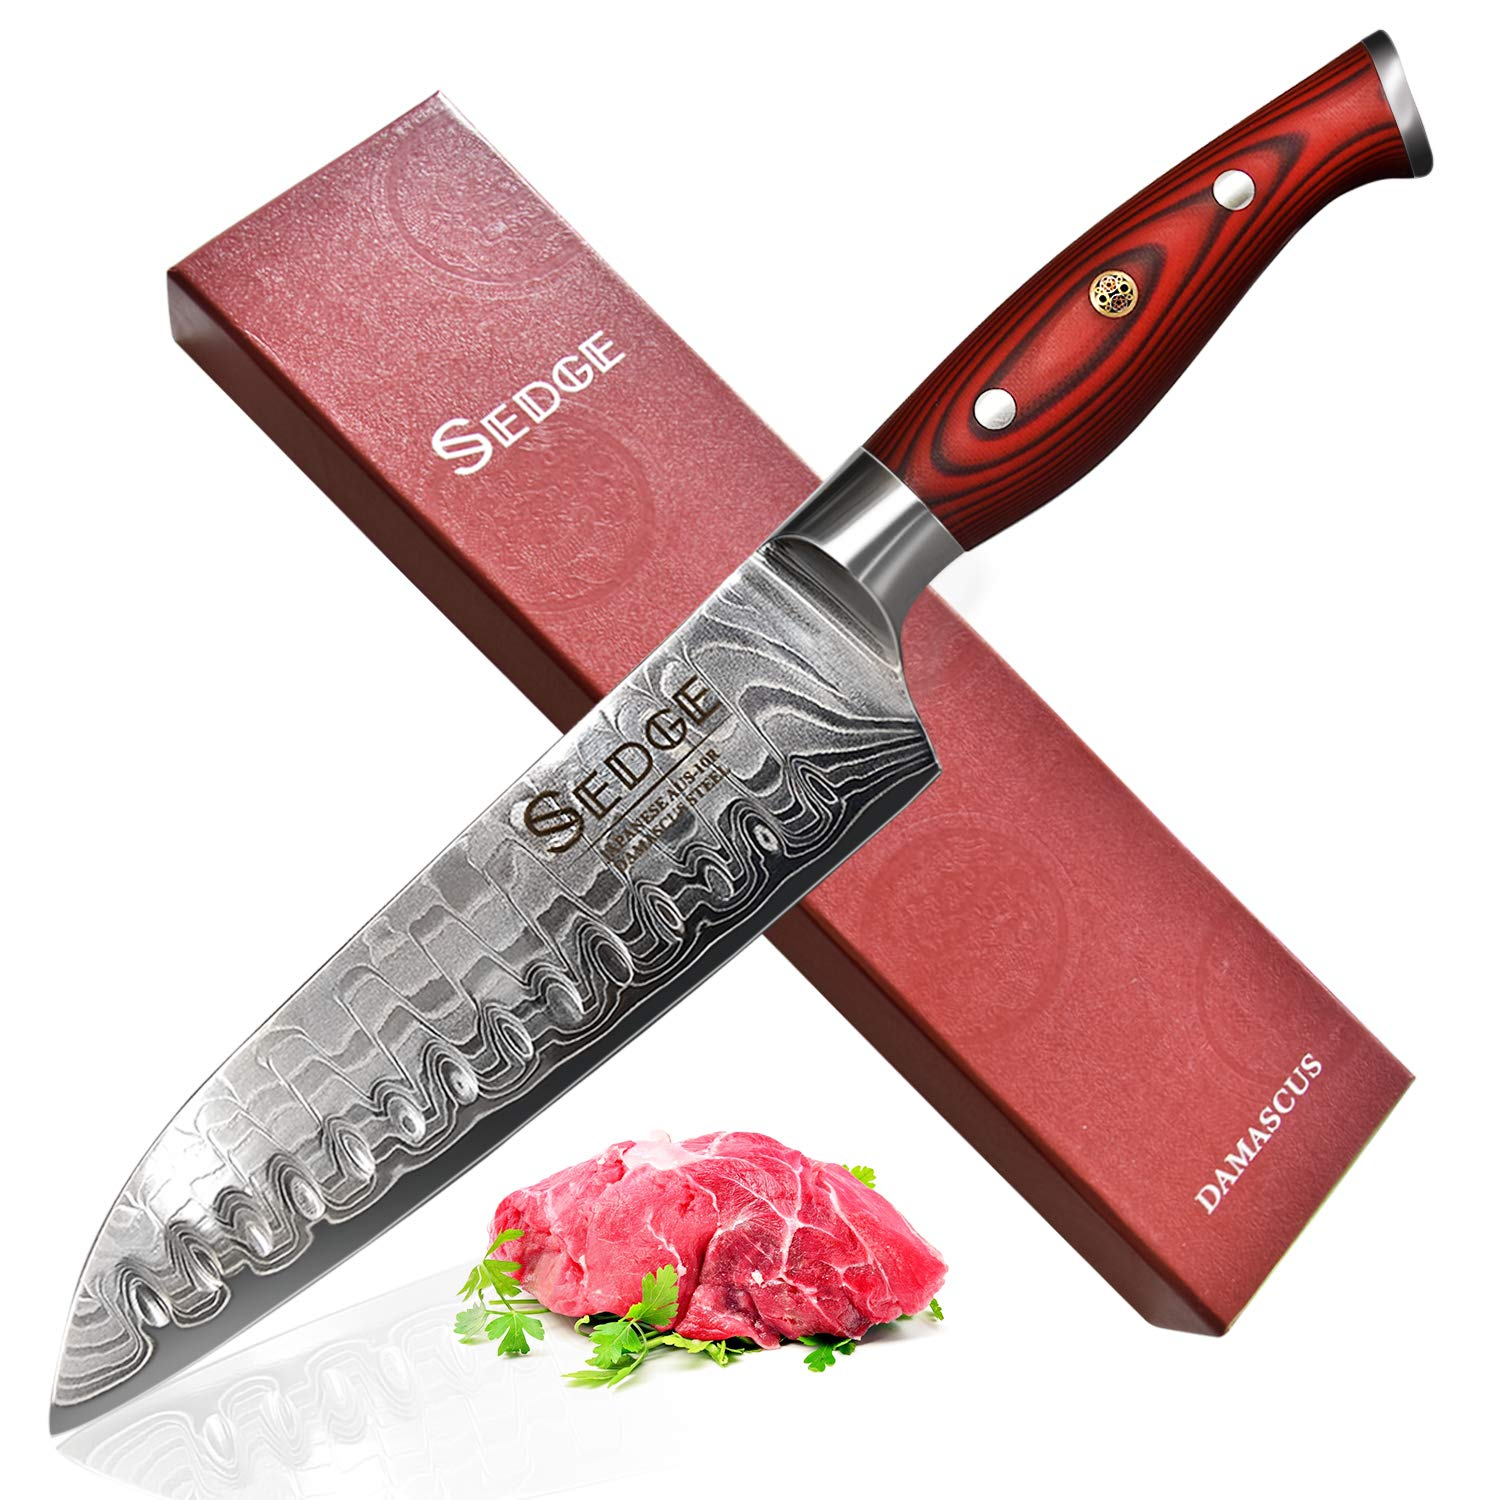 SEDGE Santoku Knife 7 Inch - Japanese Dragon Pattern Damascus AUS-10V High Carbon Steel - Ergonomic G10 Handle with with Exquisite Gift Box - SD-R Series